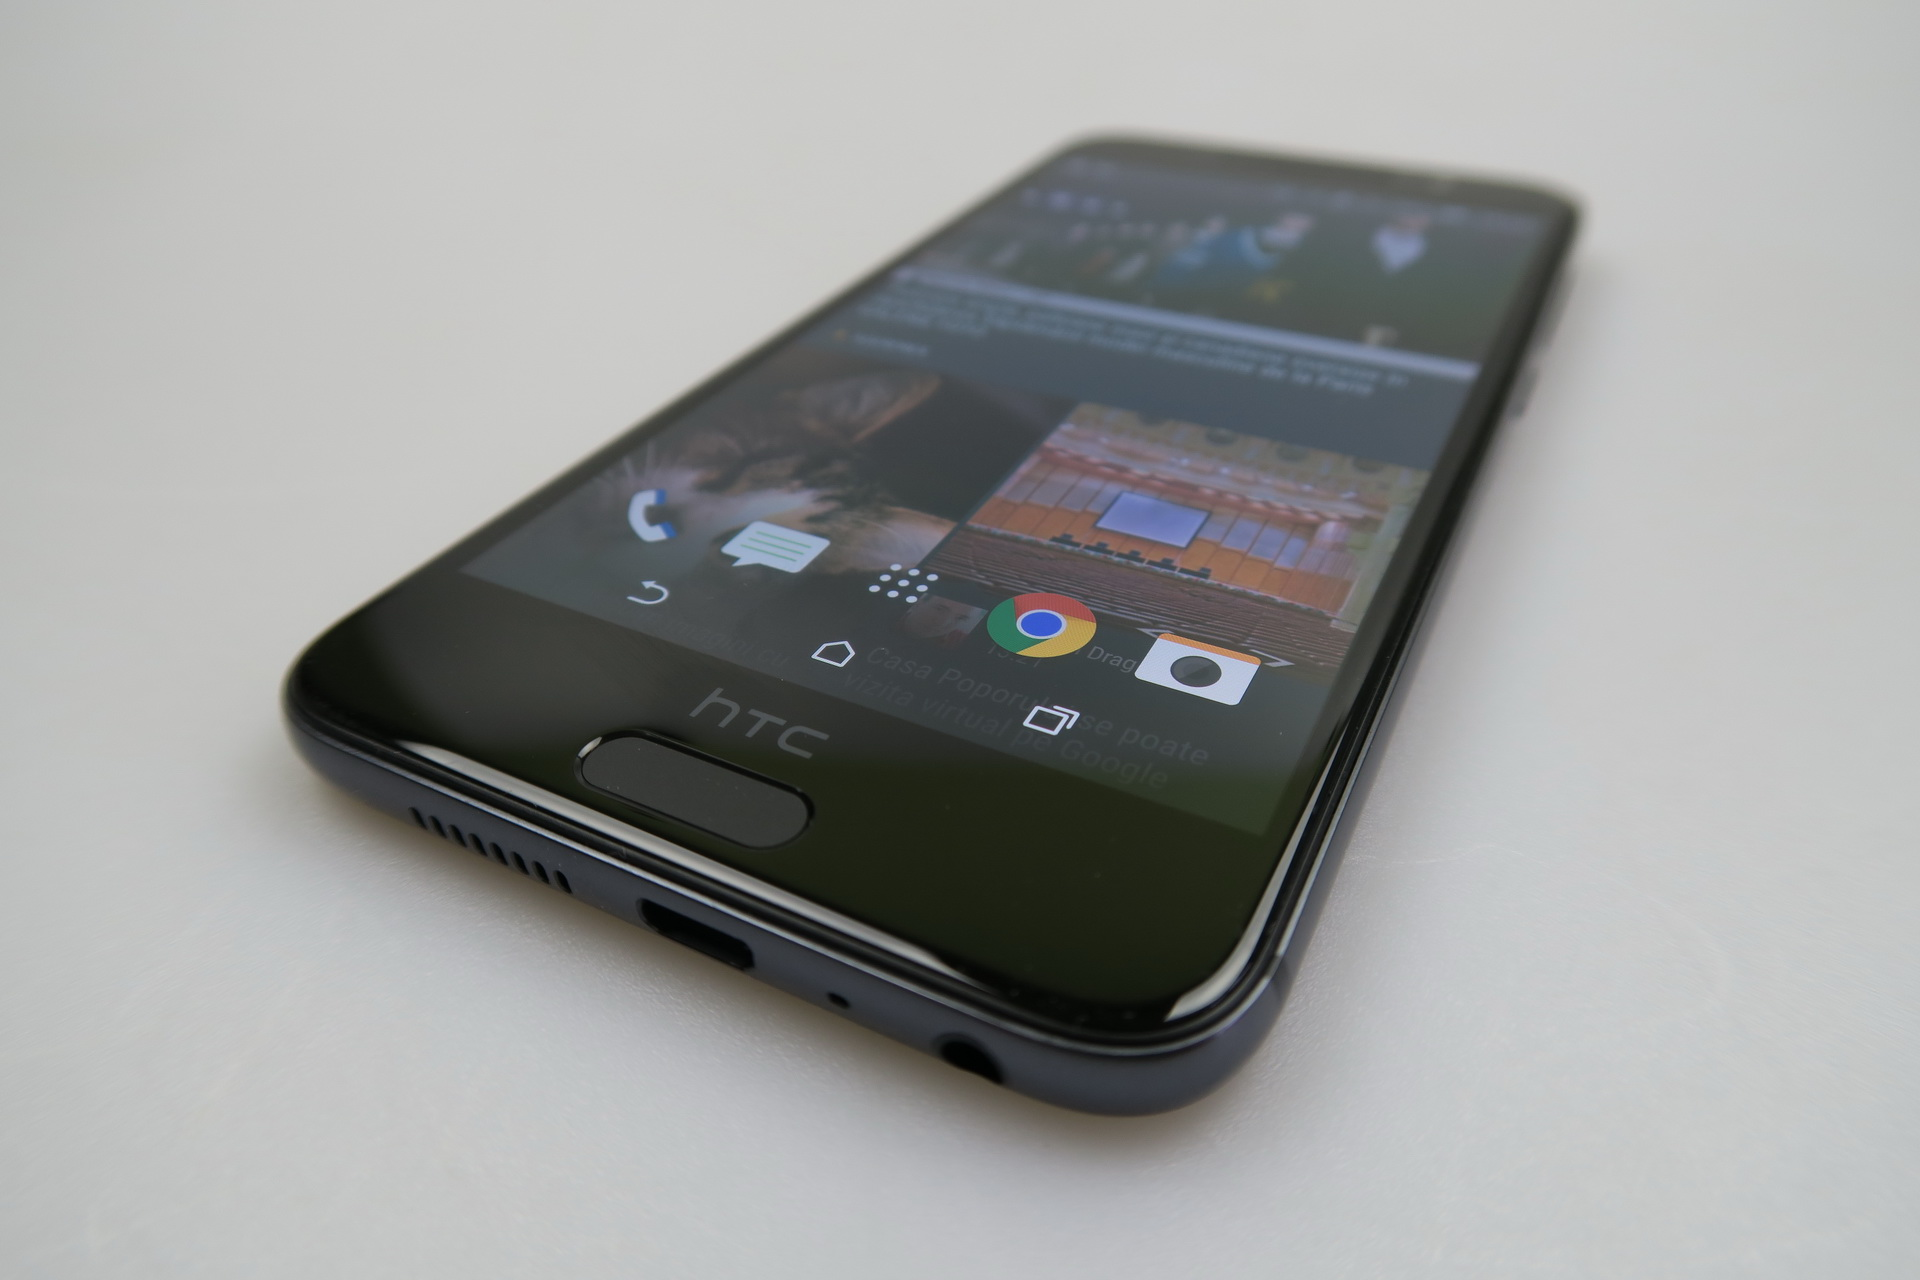 htc one a9 review one m9 rematch offers solid design. Black Bedroom Furniture Sets. Home Design Ideas